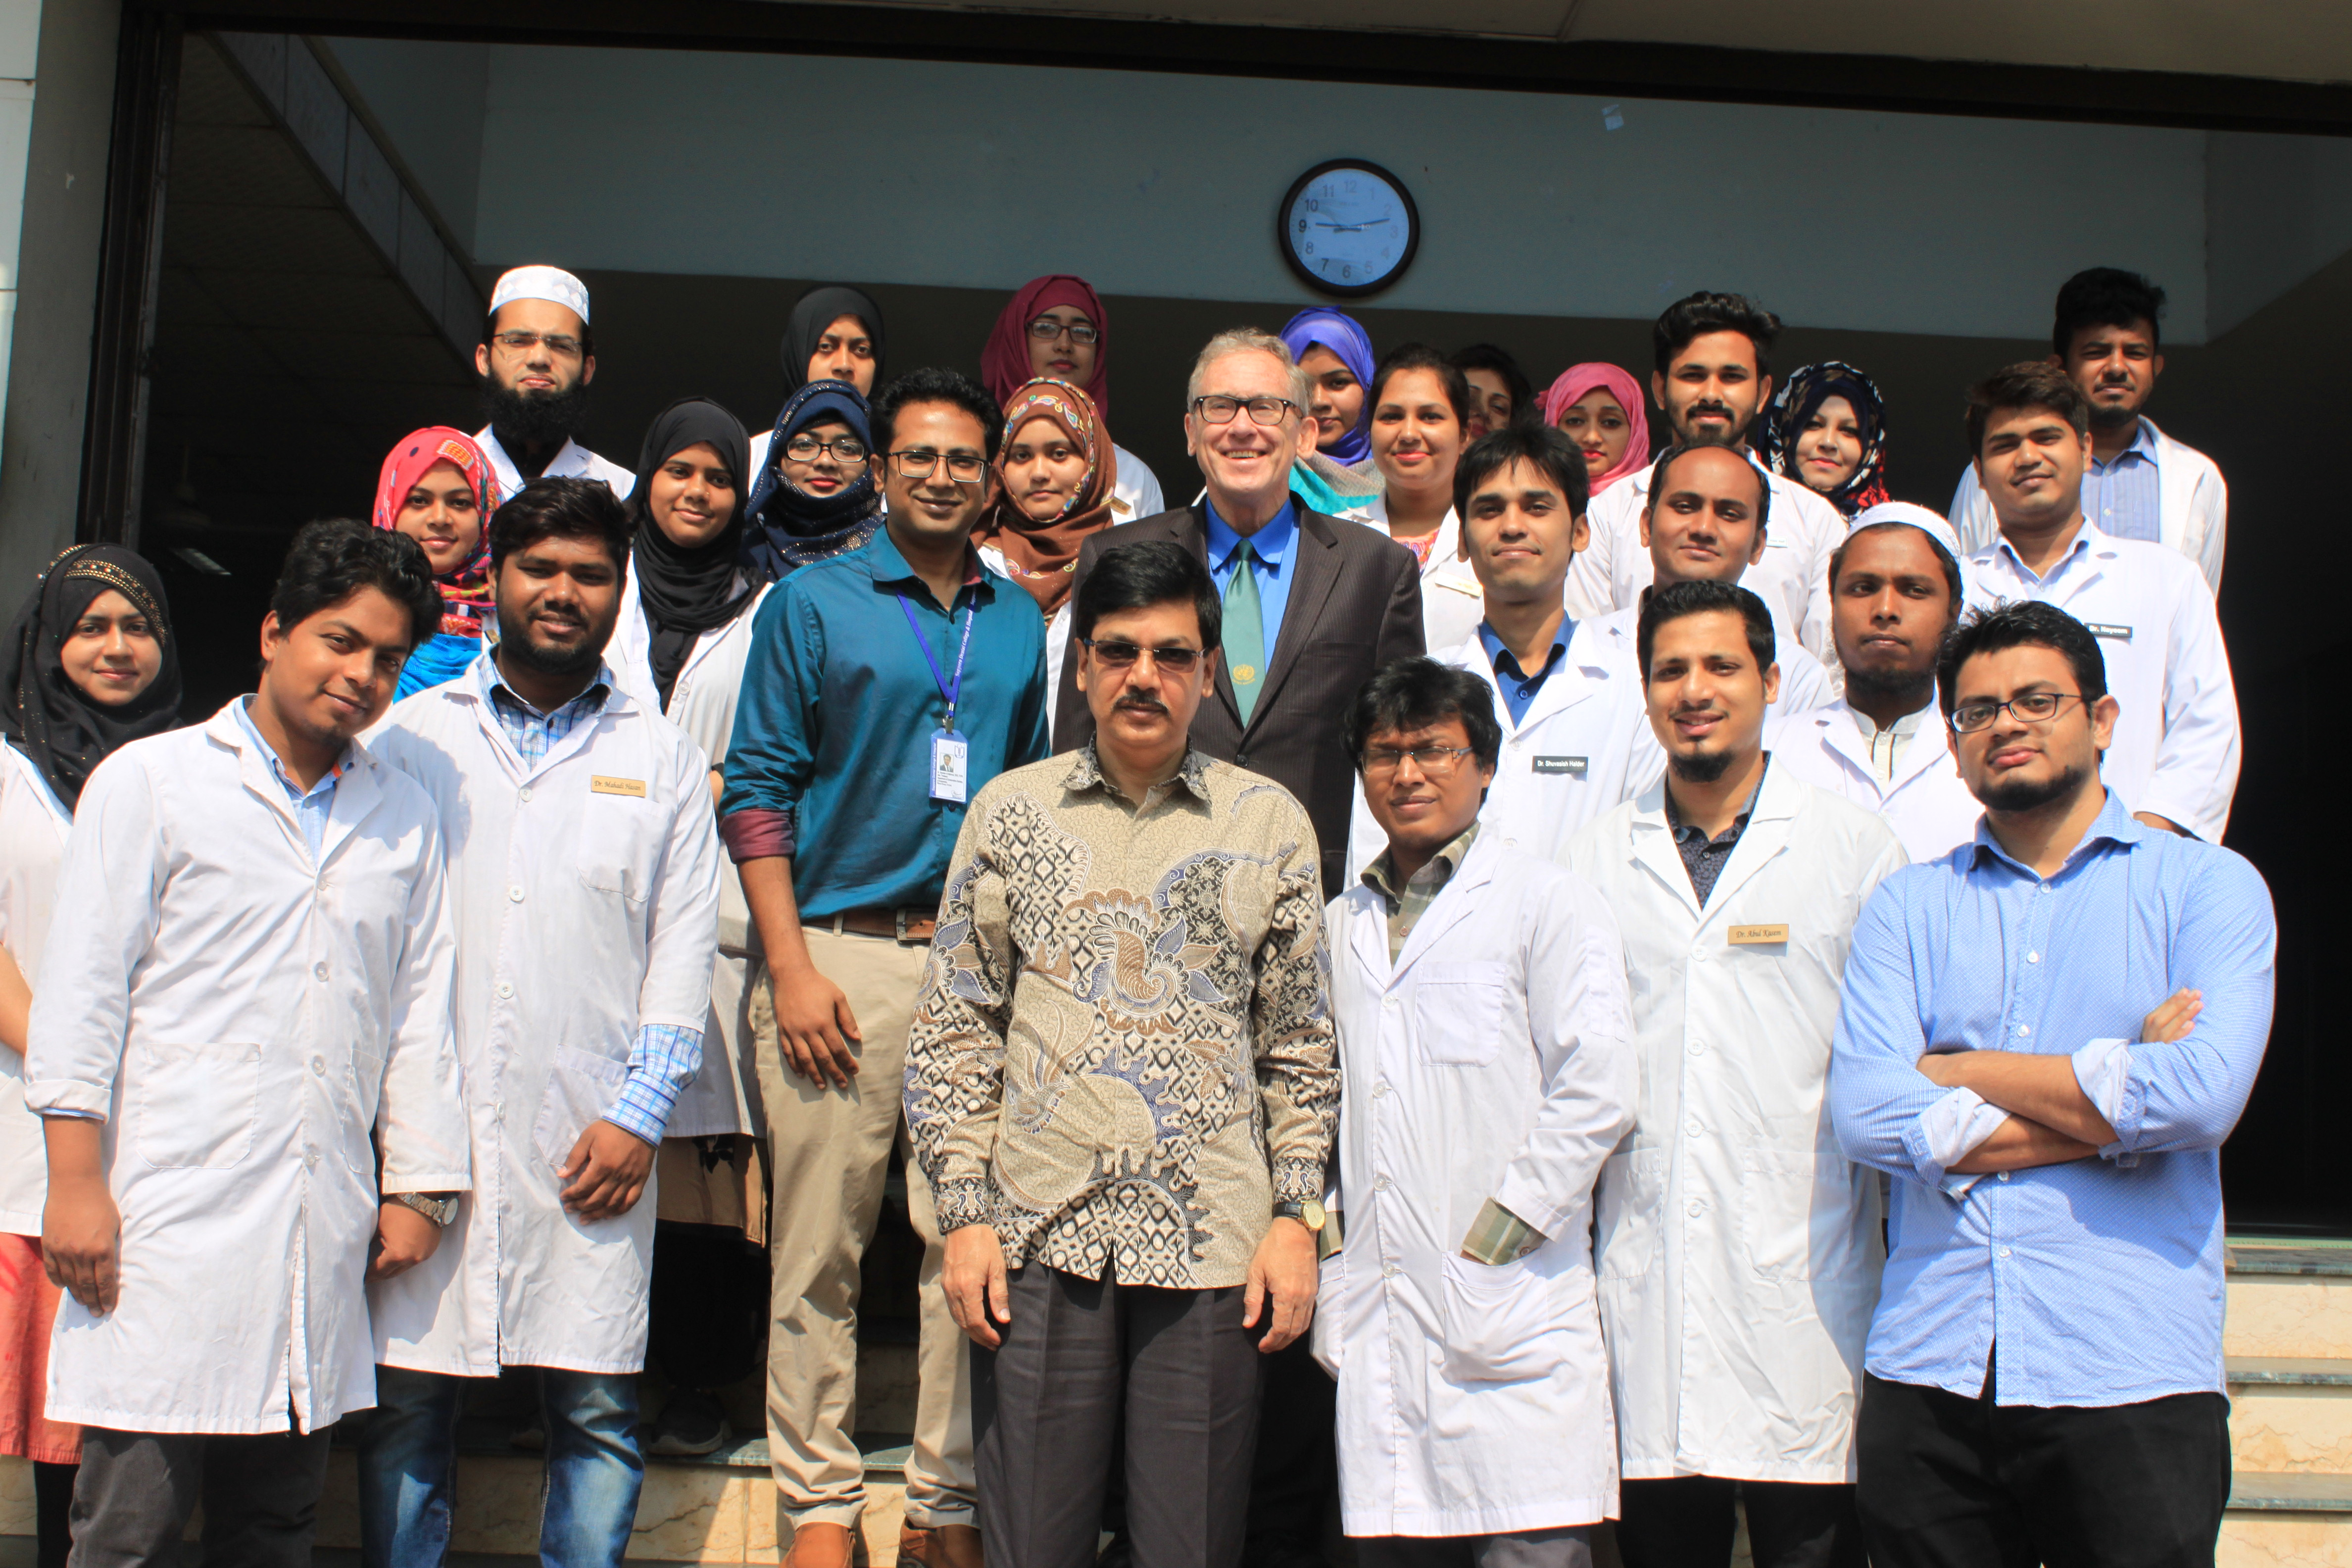 President of World Alliance, Charles G. Brown  and ESDO team visited Sapporo Dental College